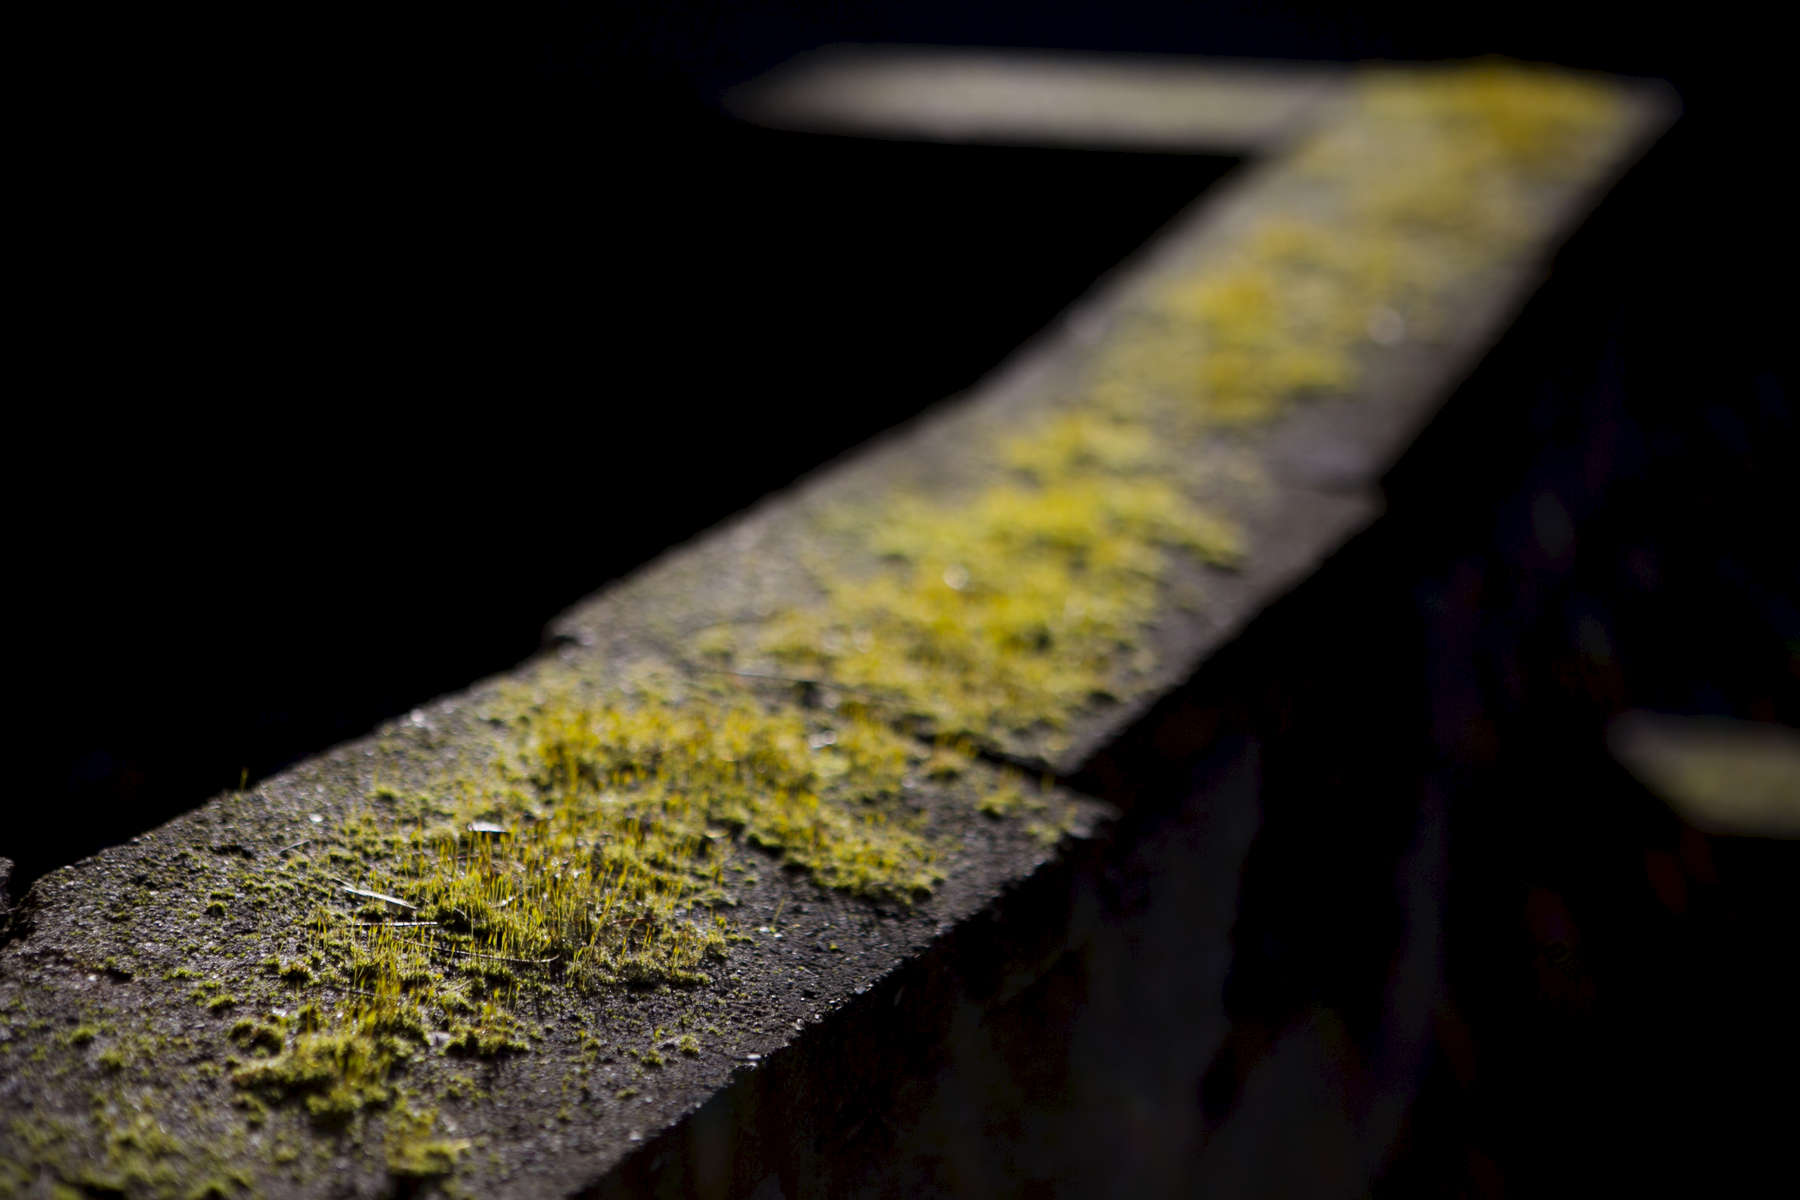 Moss, algae and lichens grow abundant during the winter, and glow brilliantly in the spring sun. Portland, OR.